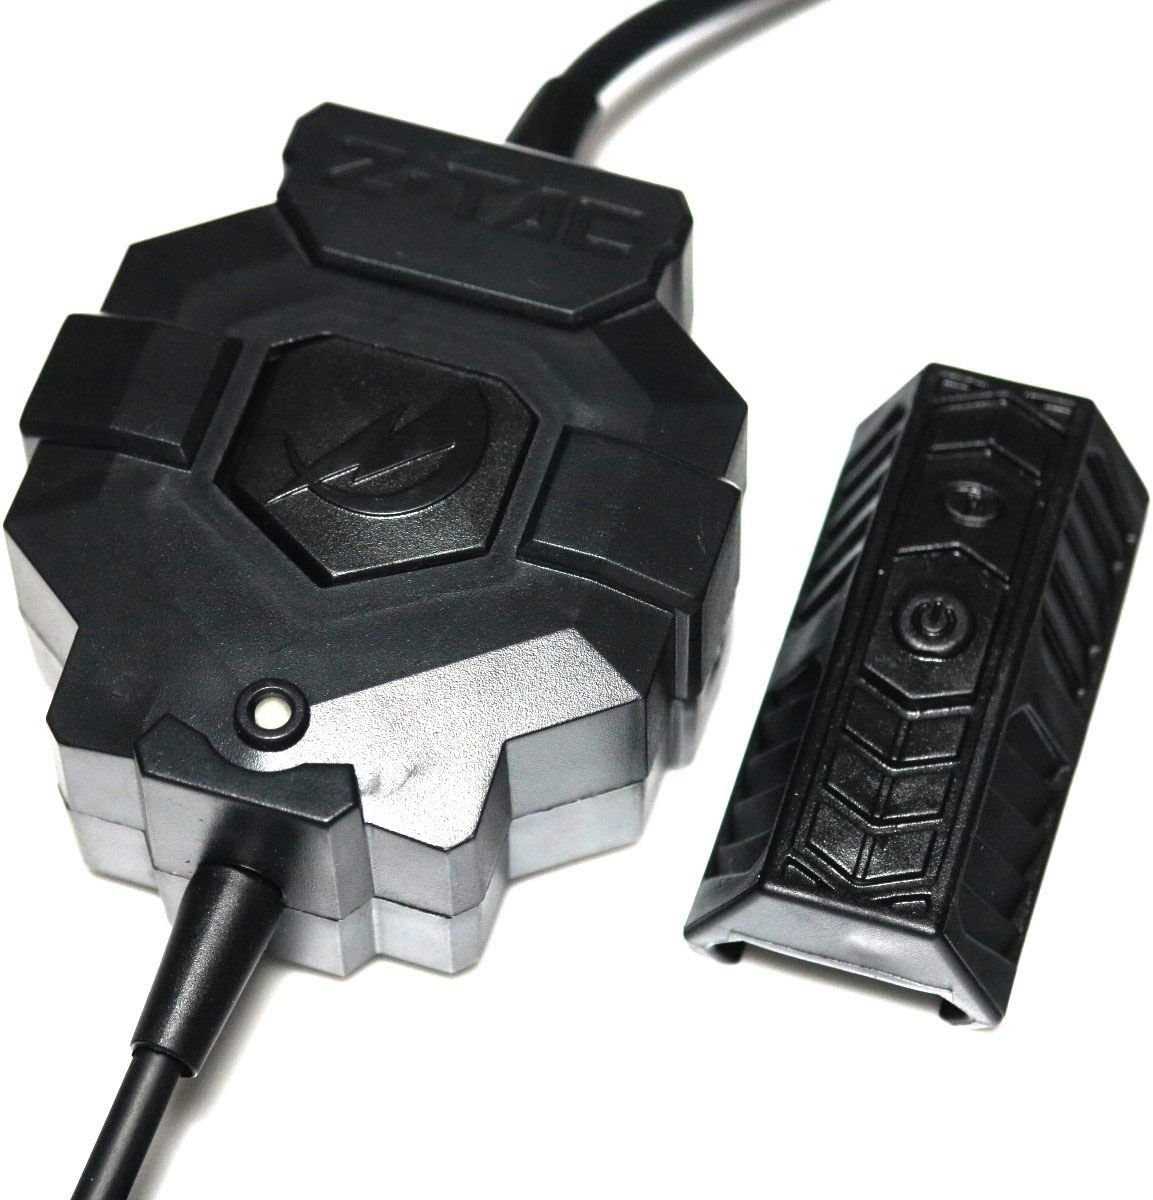 Model No.Z123 Z Tactical Wireless Headset Cable /& PTT for Motorola Talkabout